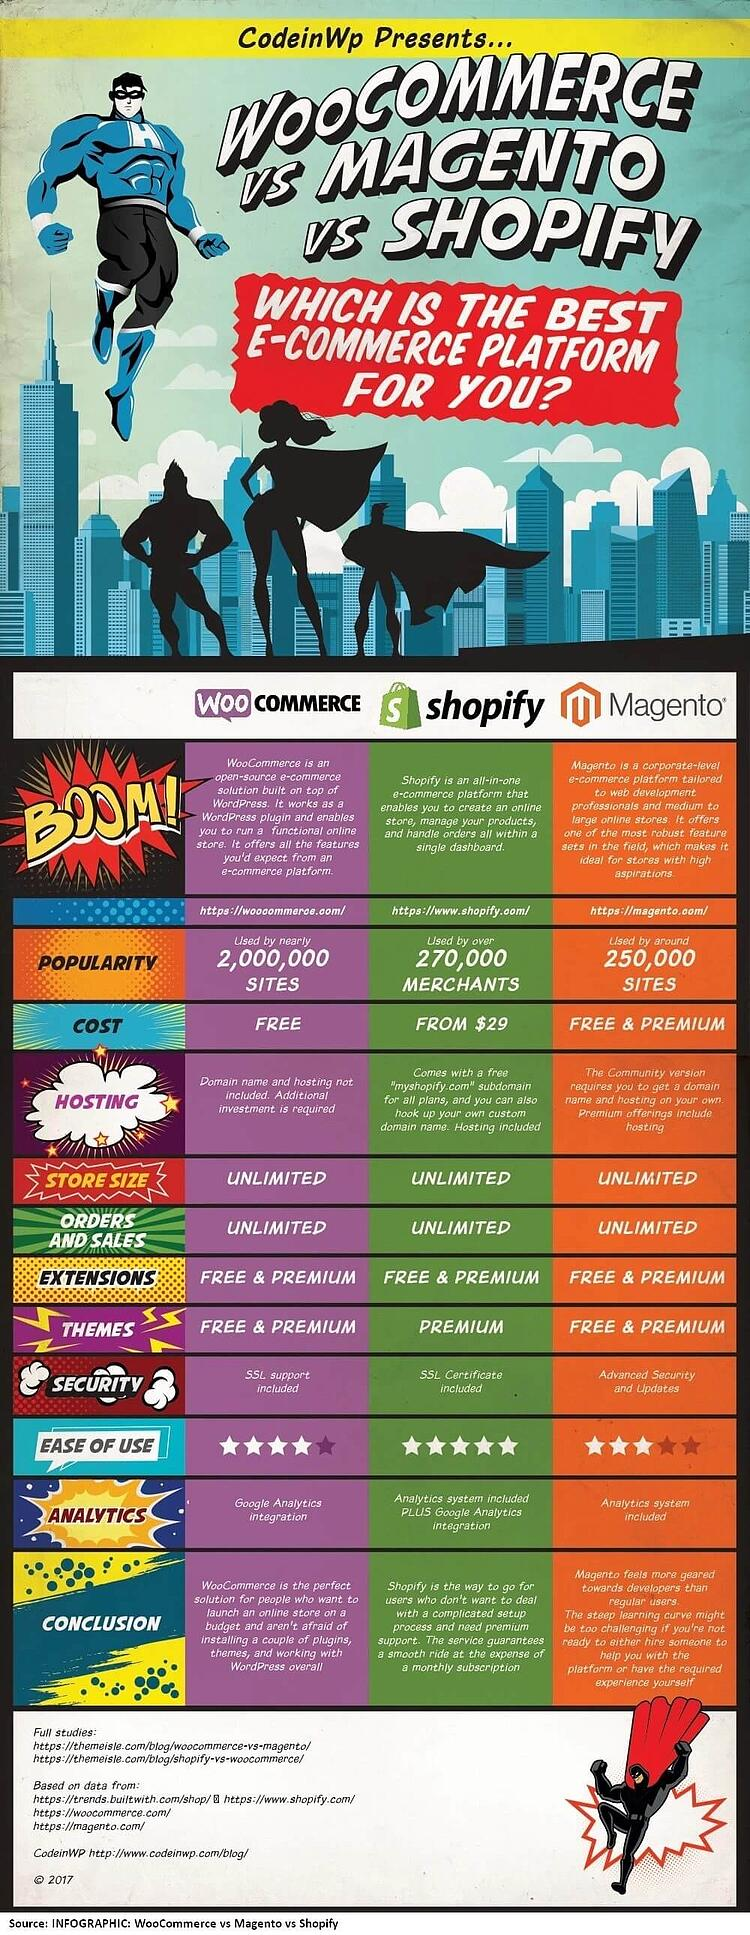 WooCommerce-vs-Magento-vs-Shopify-1